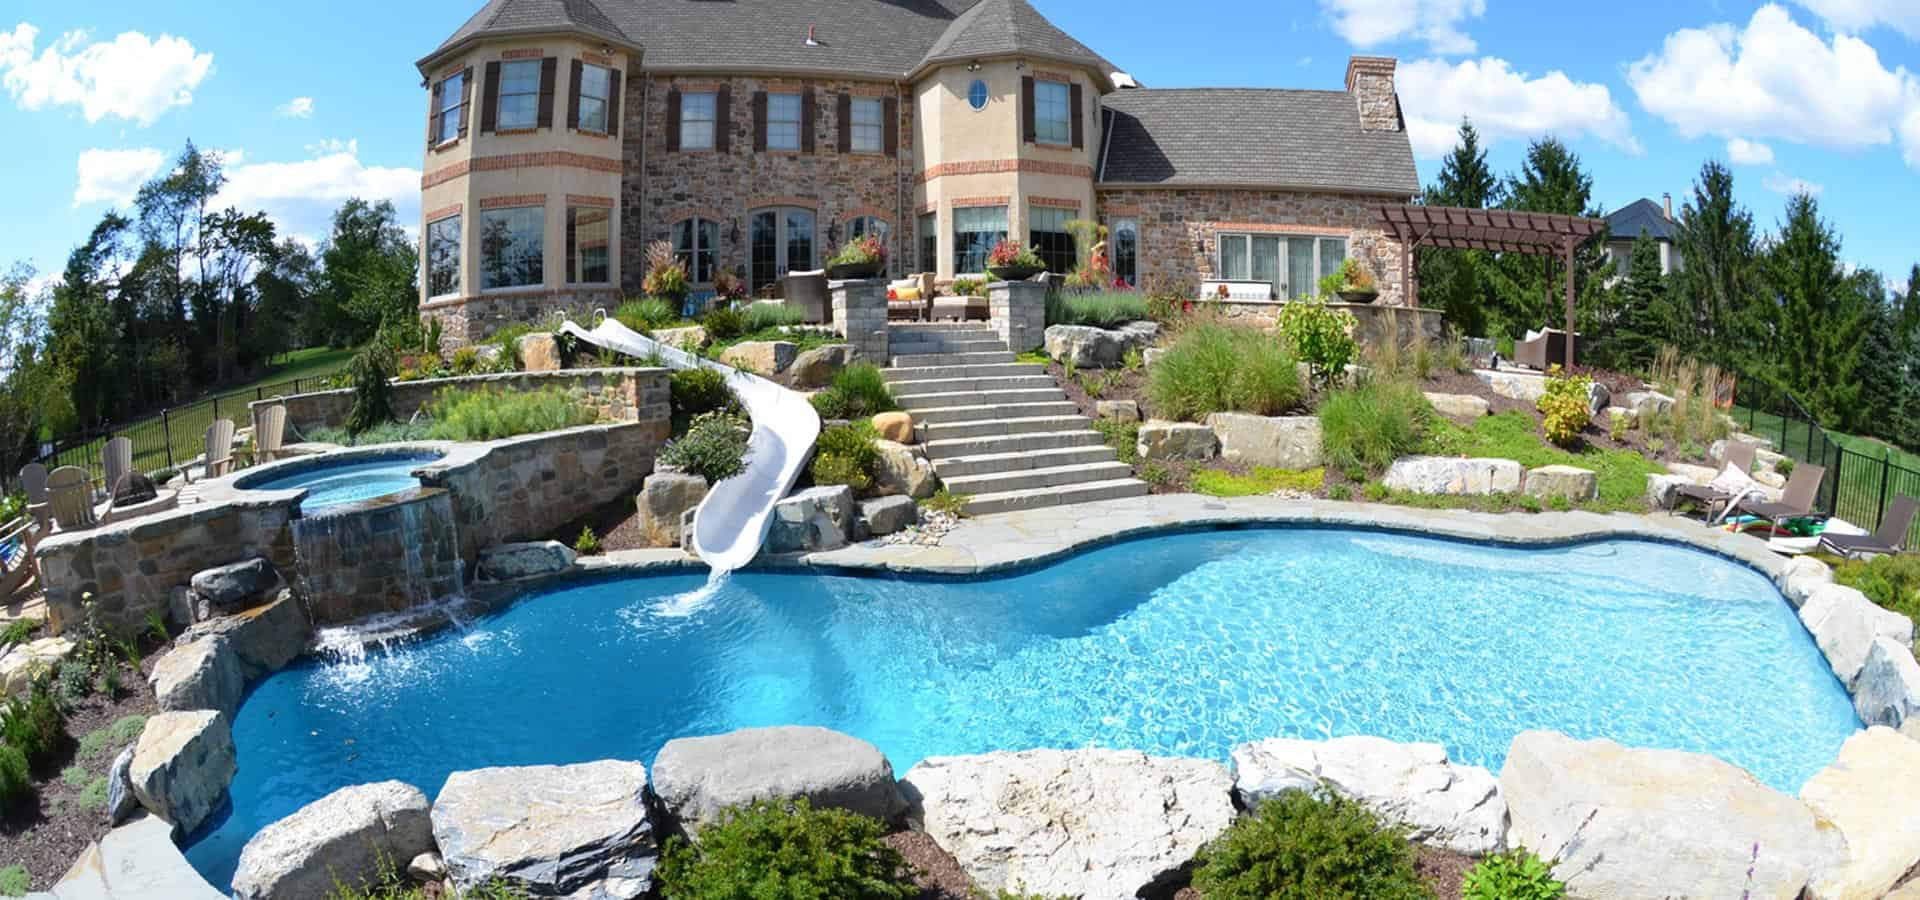 large natural rock pool design water jacuzzi and water slide